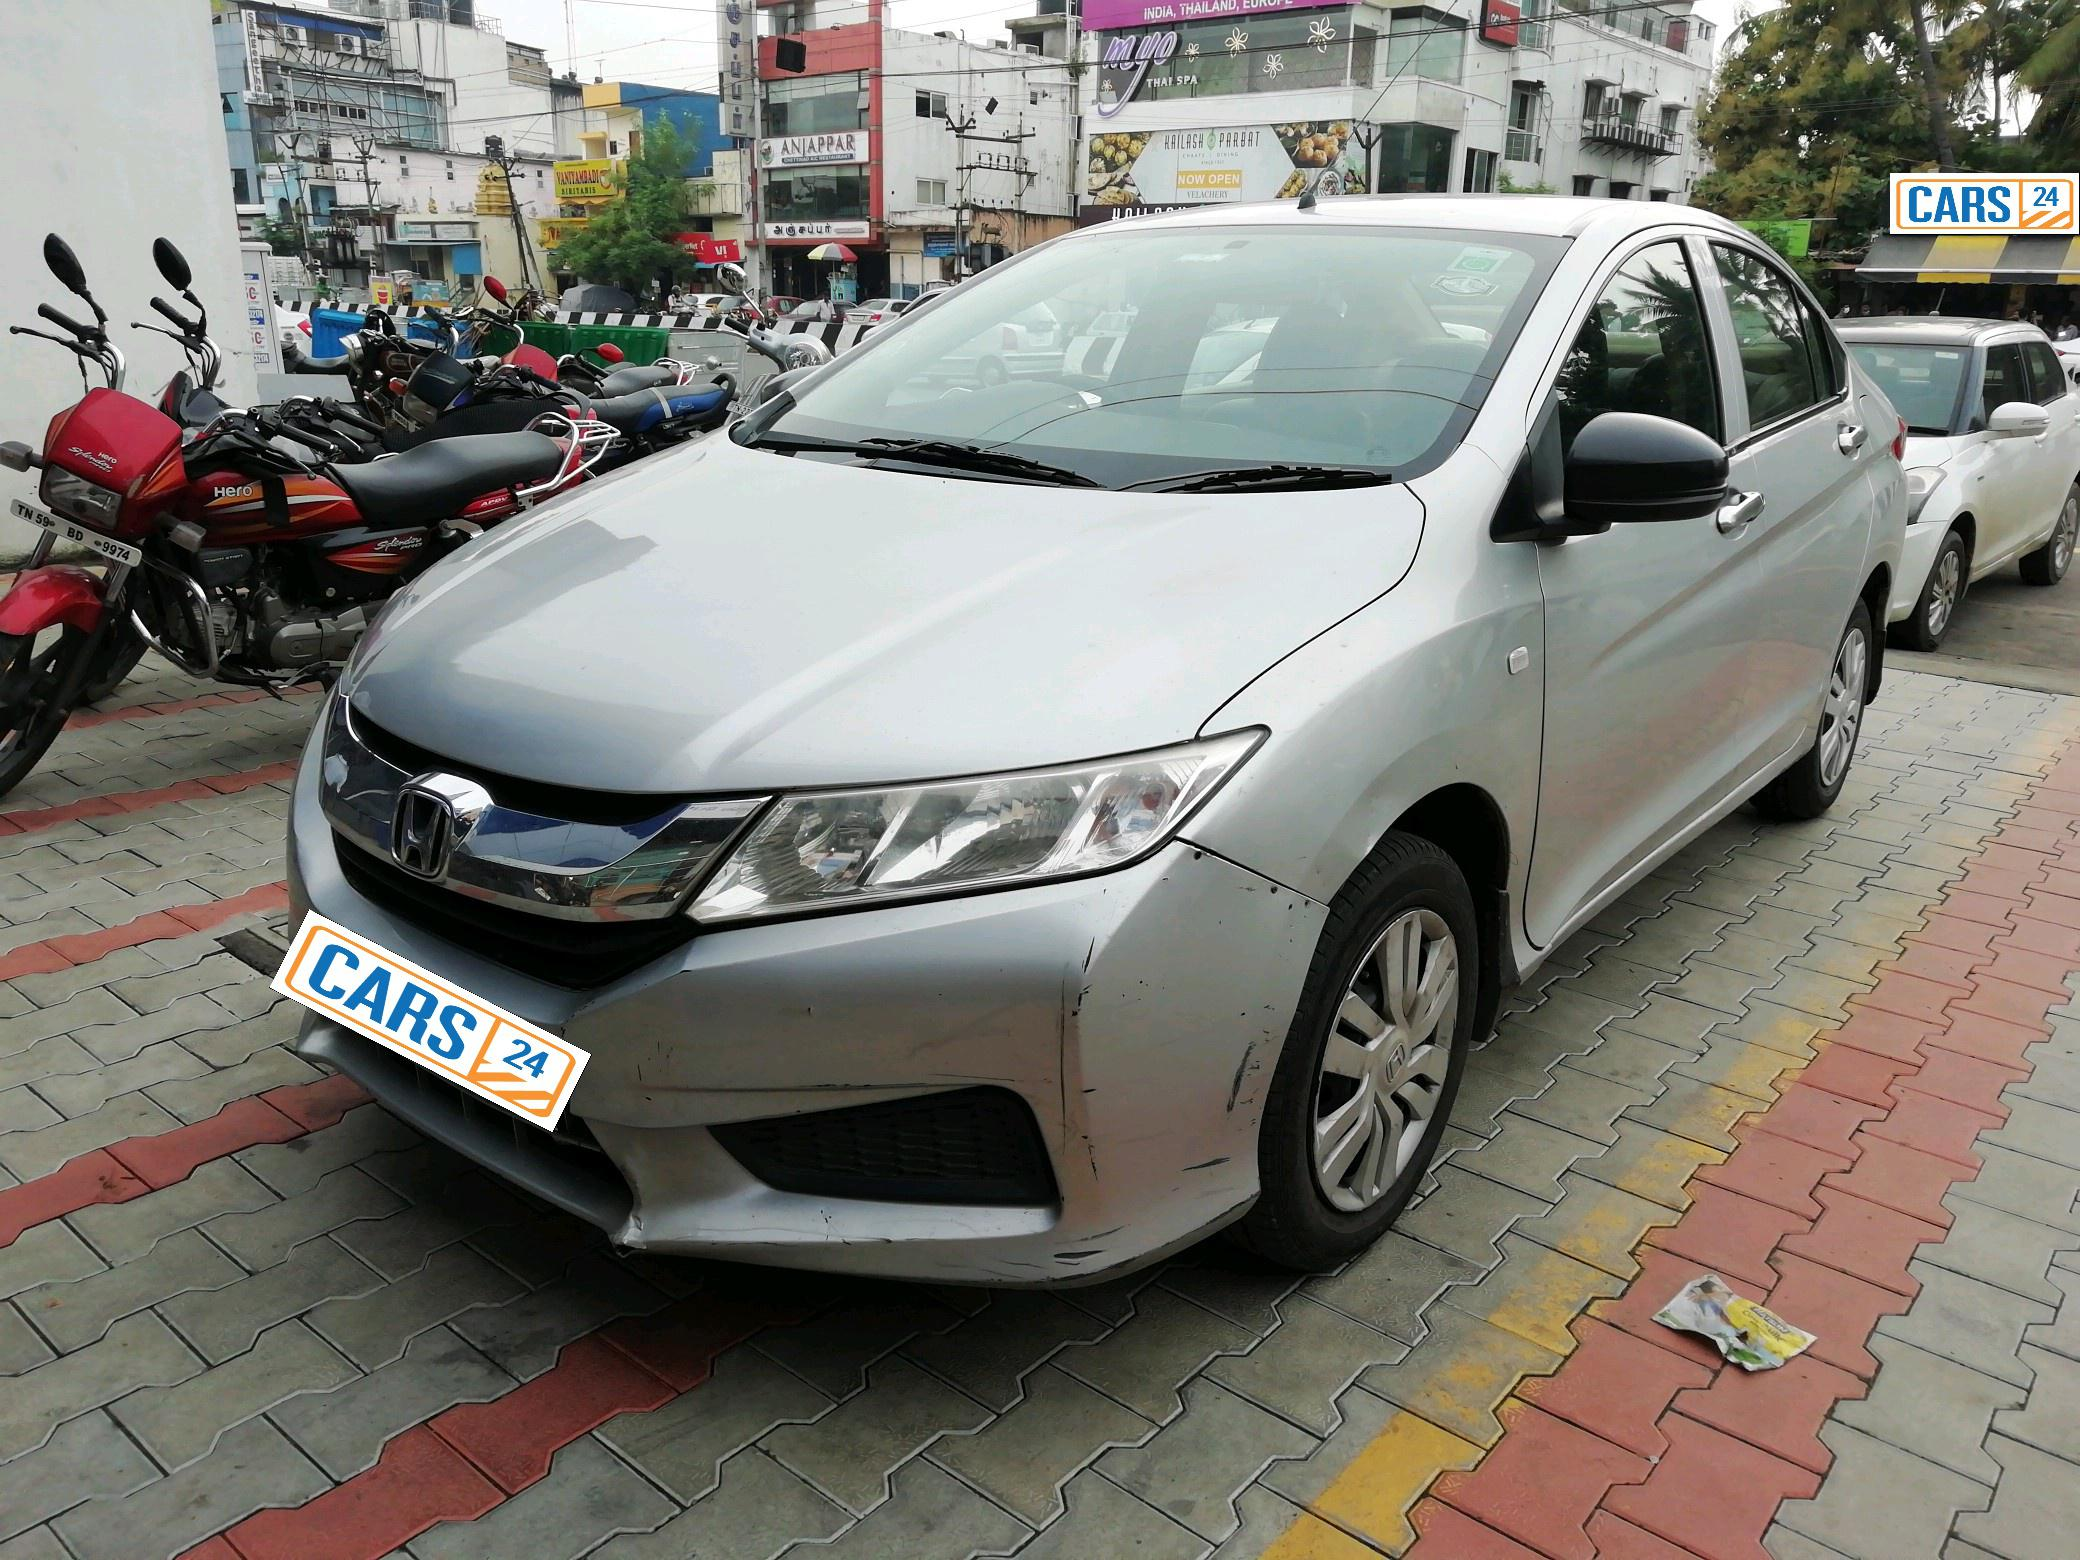 Buy Used Honda City In Undefined Cars24